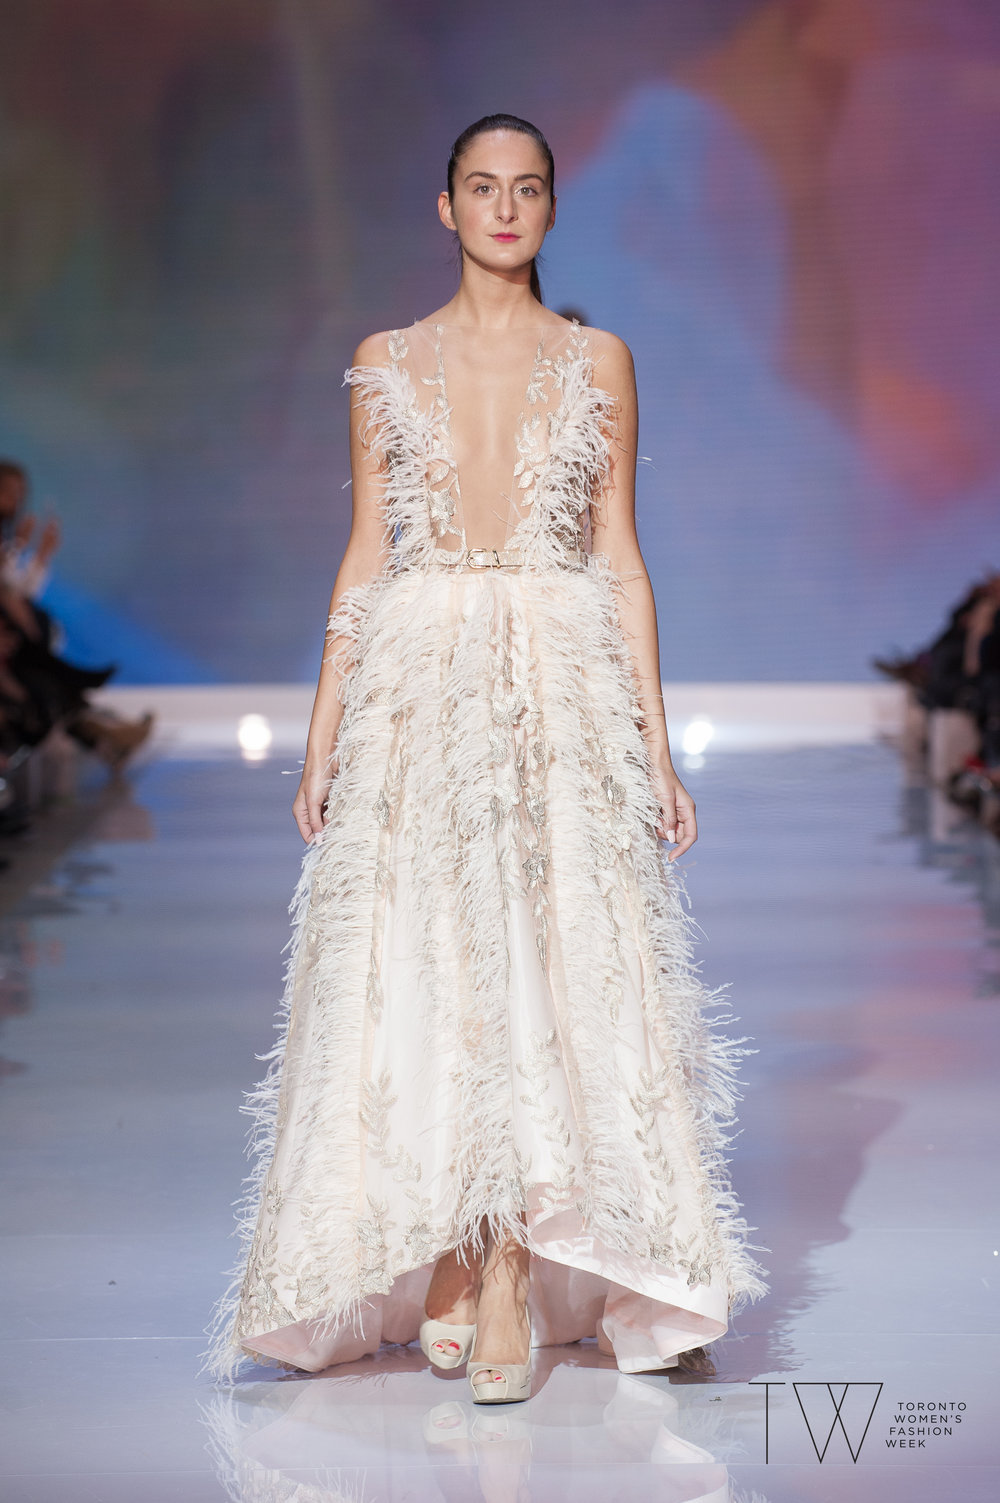 Di Carlo Couture image courtesy of Toronto Women's Fashion Week